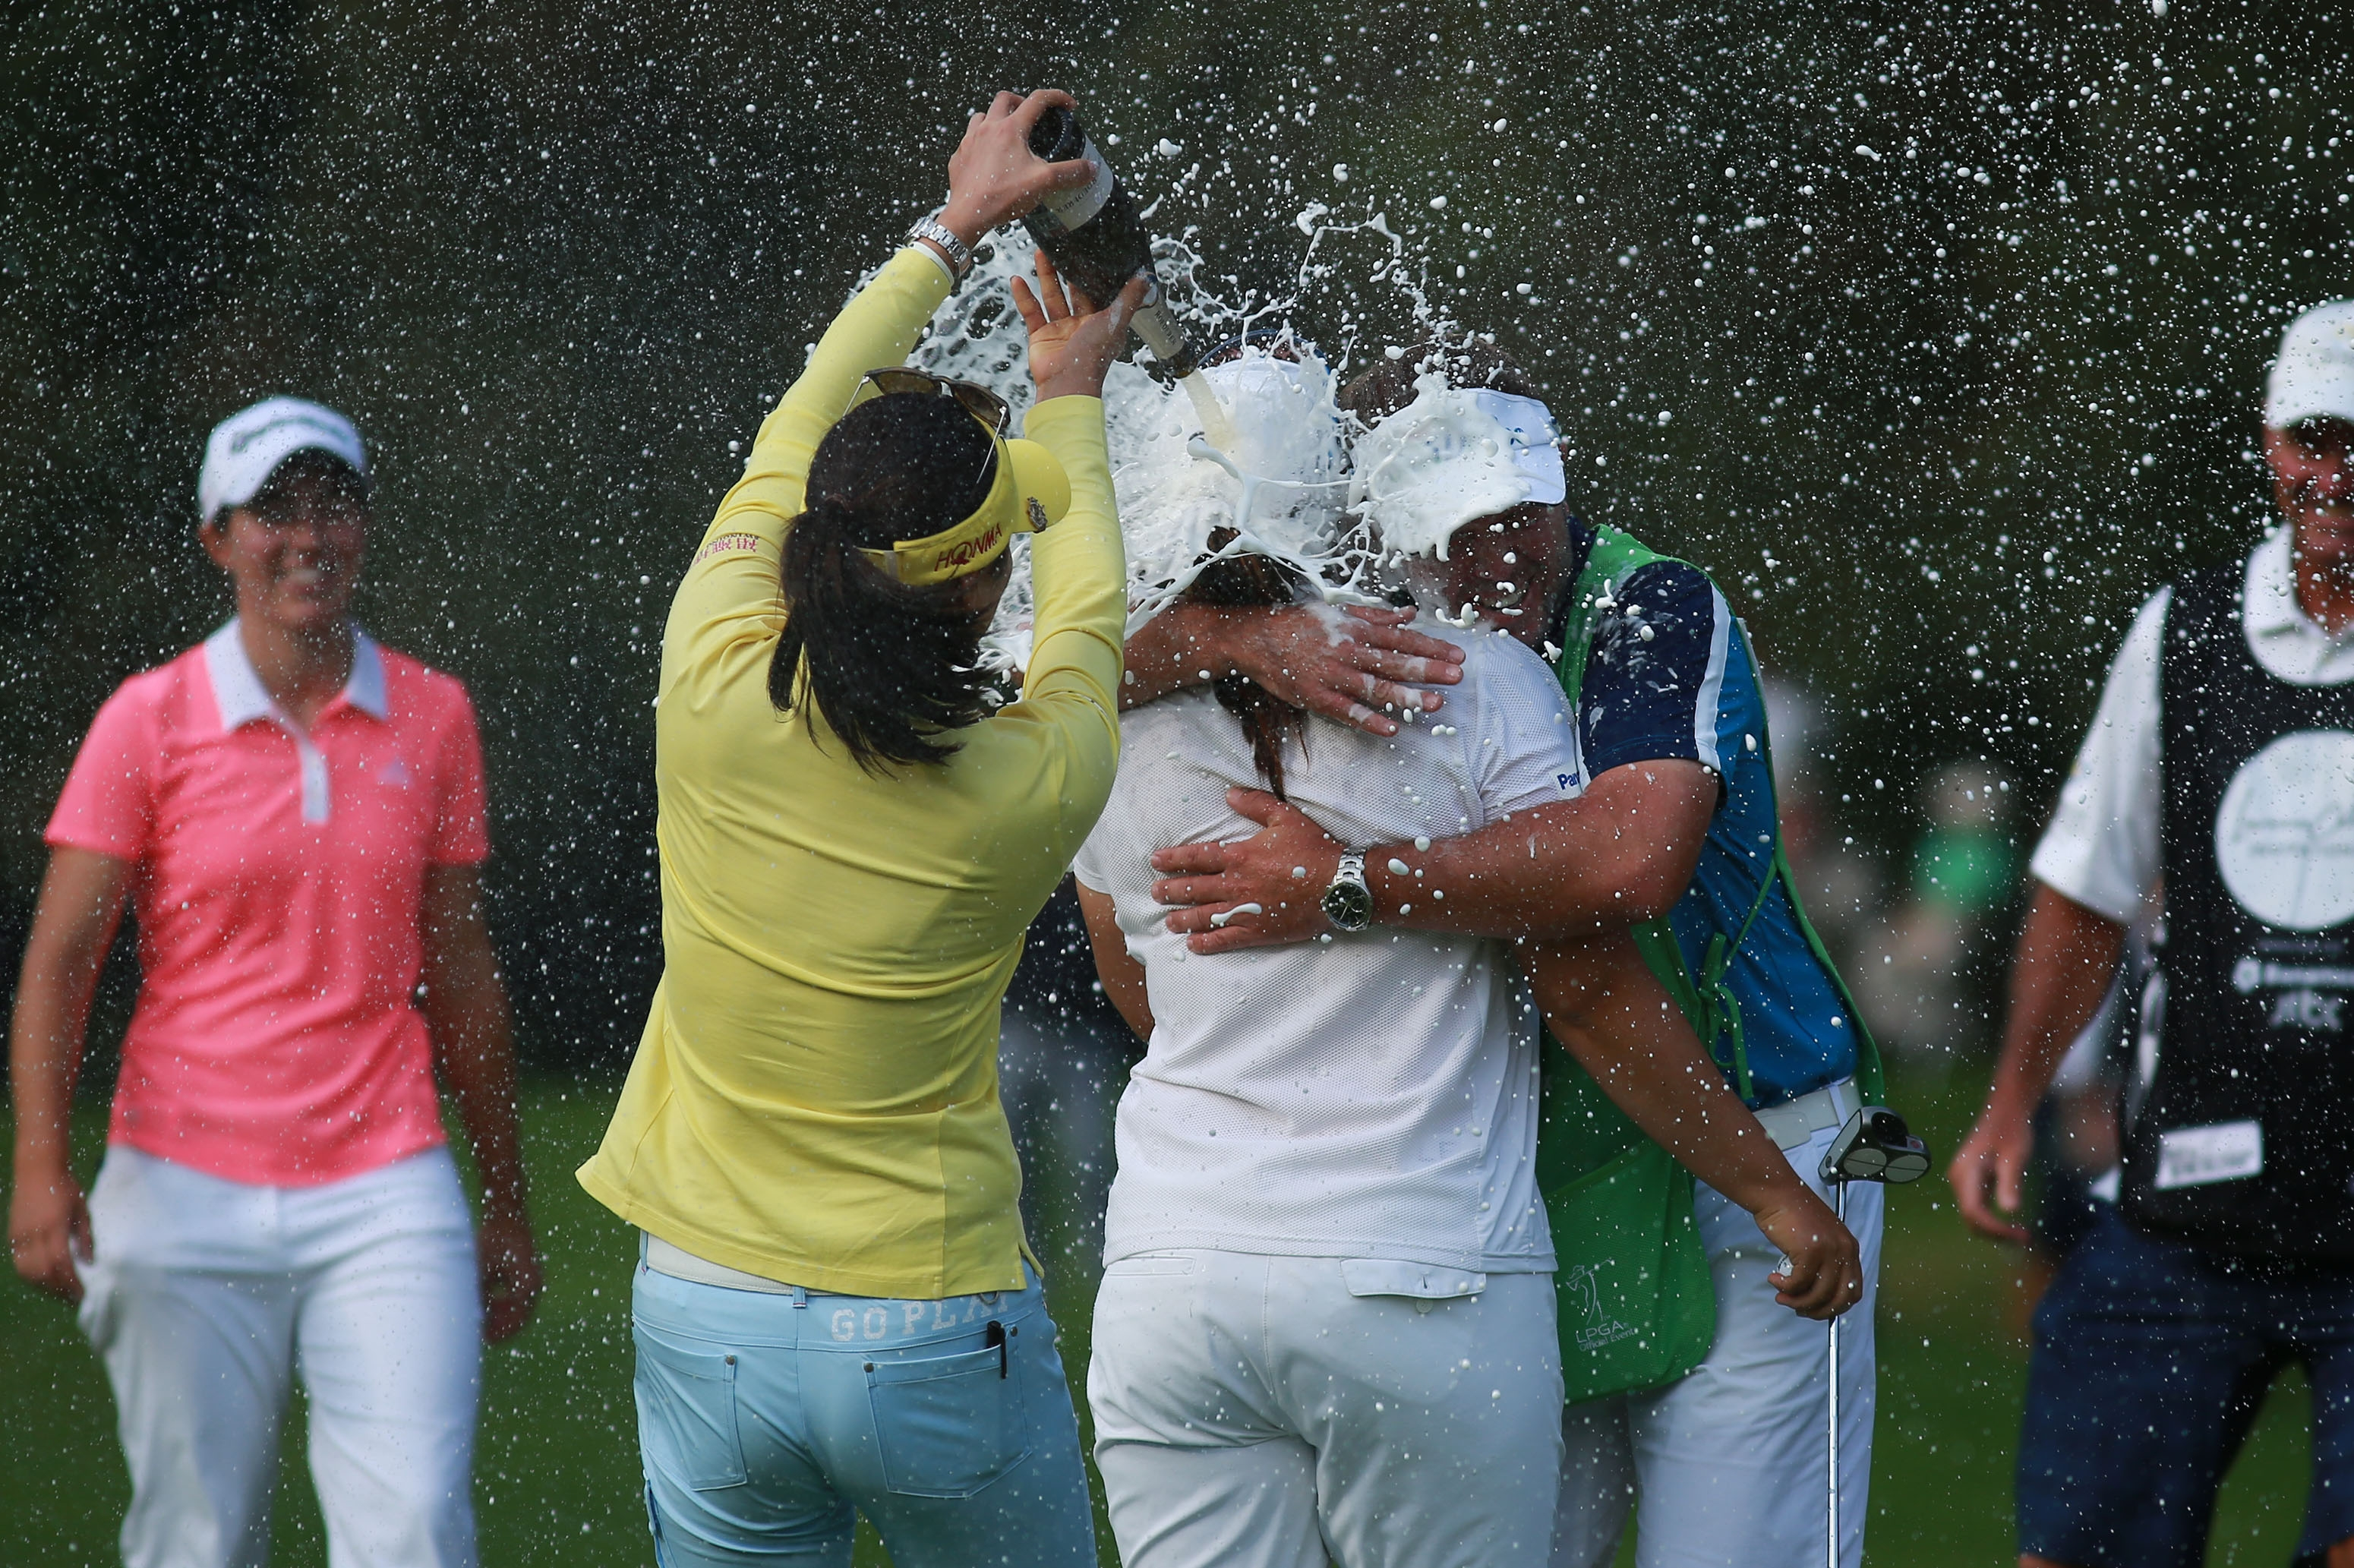 South Korea's So Yeon Ryu, second left, pours Champaign as South Korea's Inbee Park embraces with caddy Brad Beecher after winning the LPGA Lorena Ochoa Invitational in Mexico City, Sunday, Nov. 15, 2015. Inbee Park won the Invitational, holding off Carlo